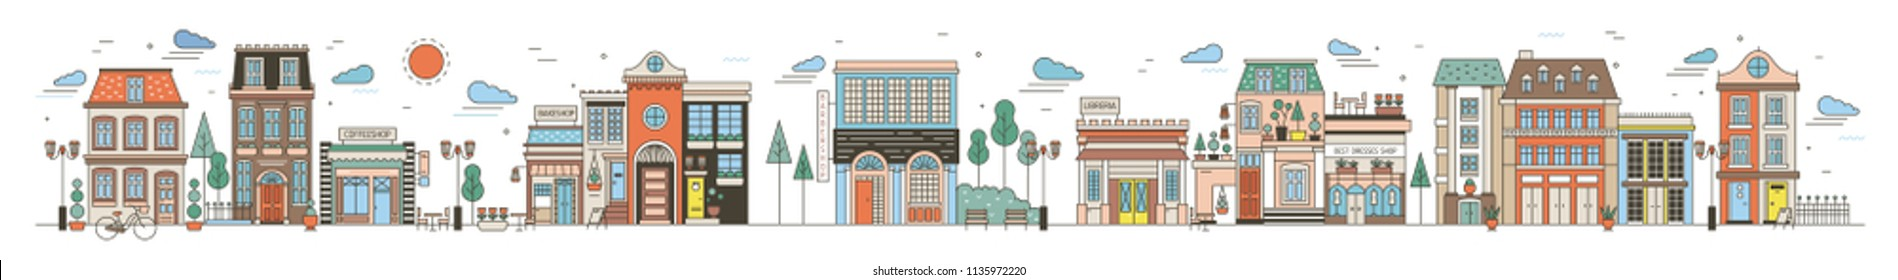 Colorful horizontal cityscape with street of European city full of elegant buildings, residential houses, stores and shops, public locations. Creative vector illustration in modern line art style